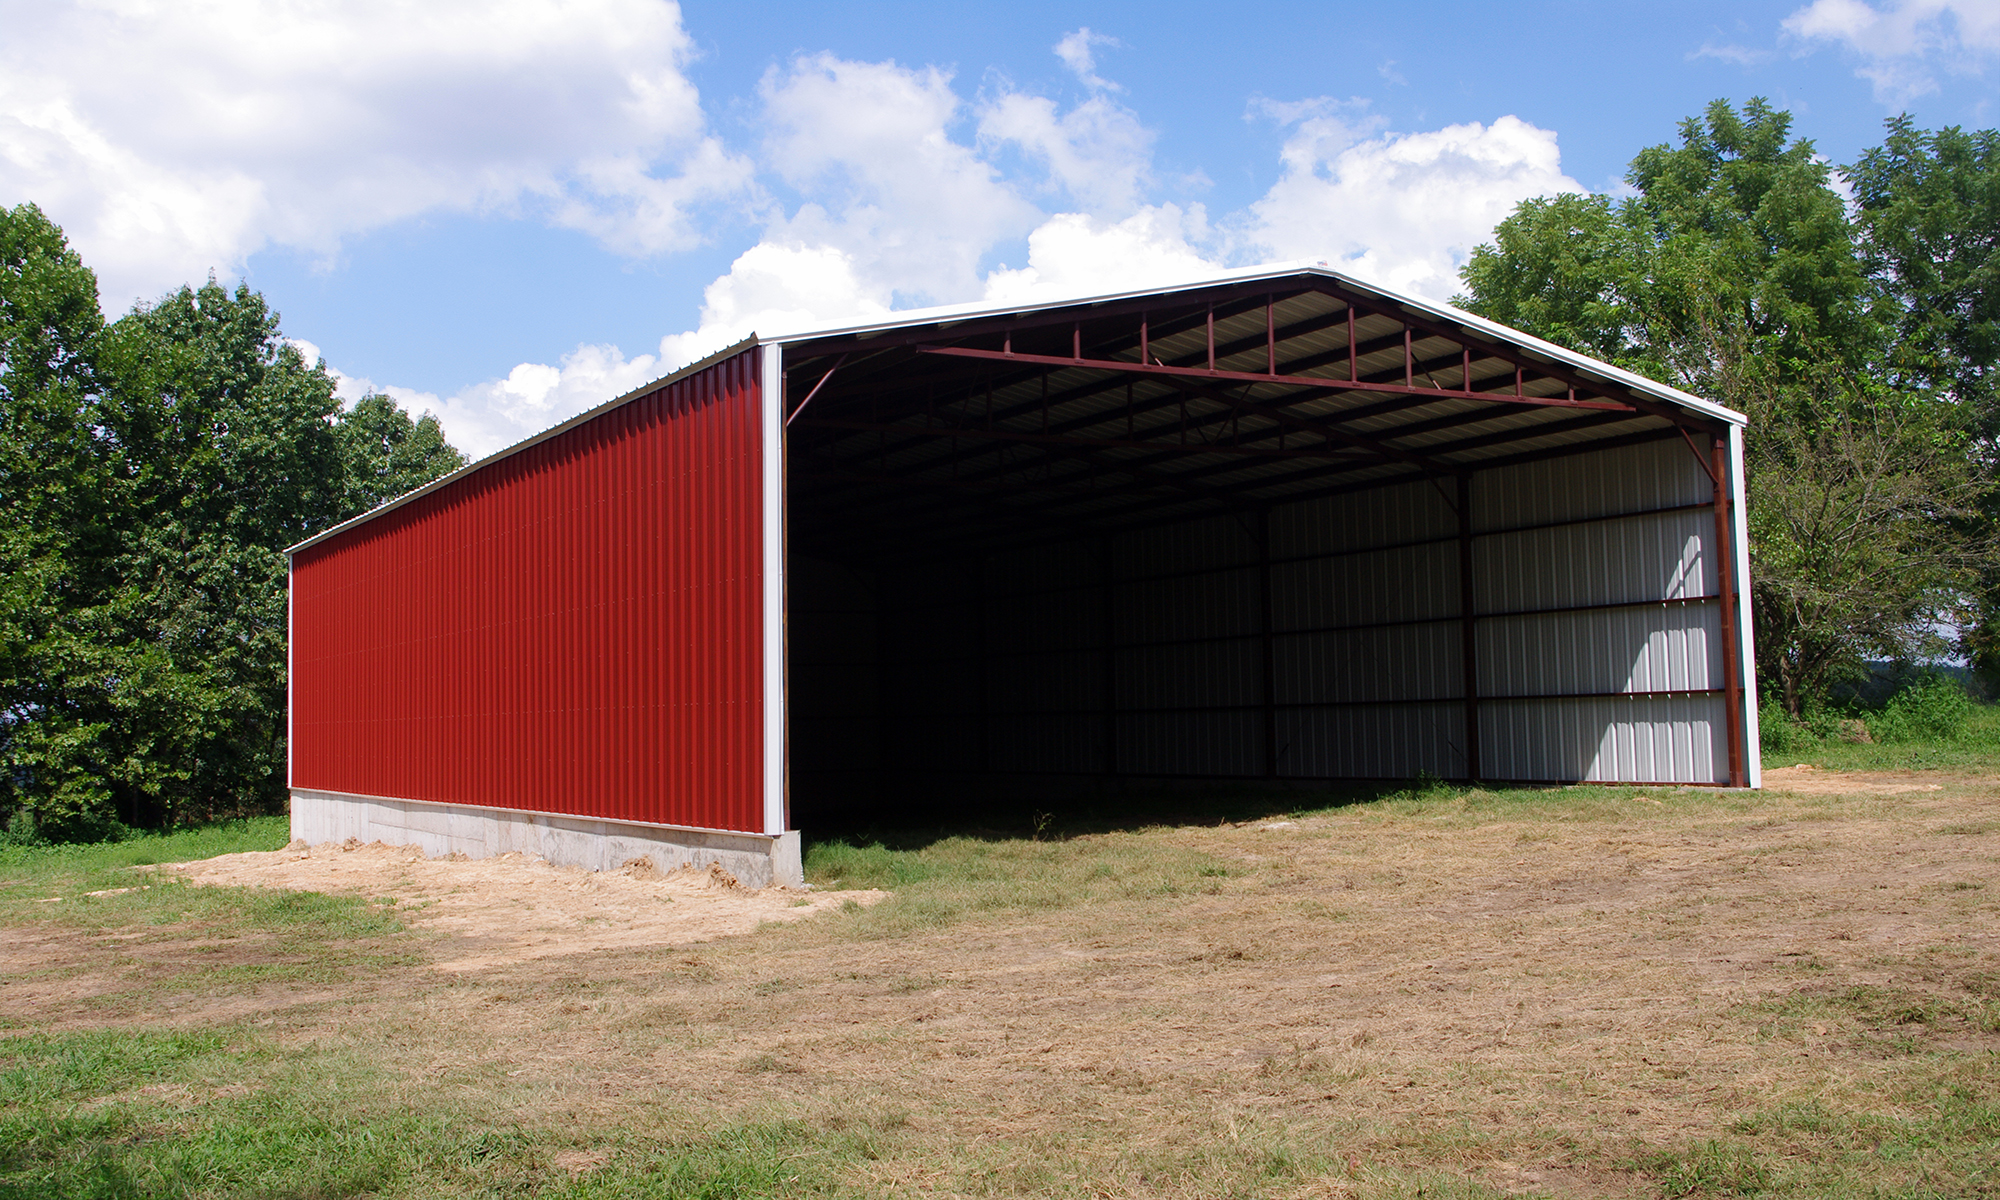 Global steel buildings diy steel building kits for Detached garage cost estimator